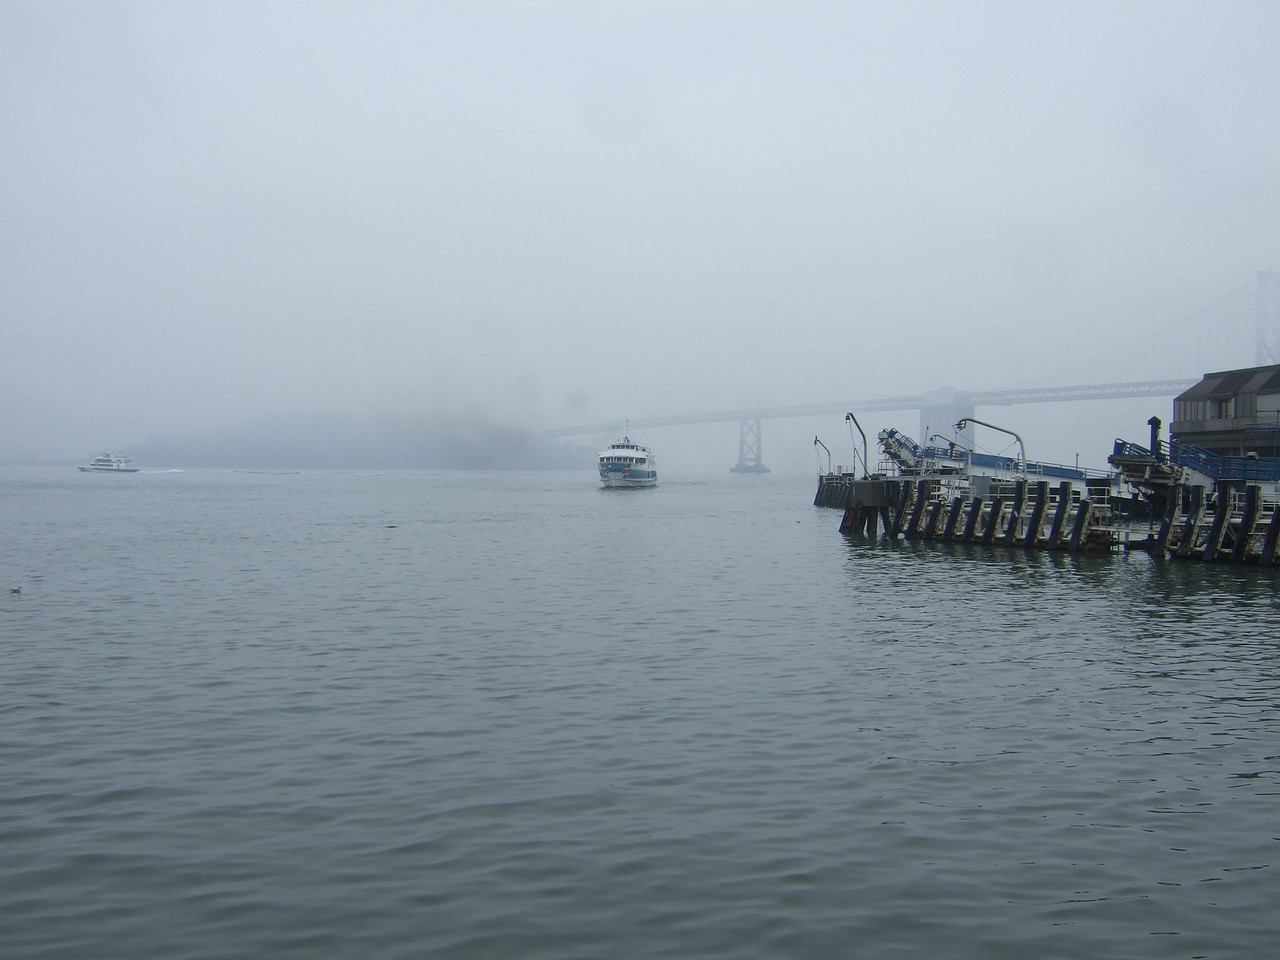 A ferry comes in from the fog. We were at the Ferry Terminal having lunch.